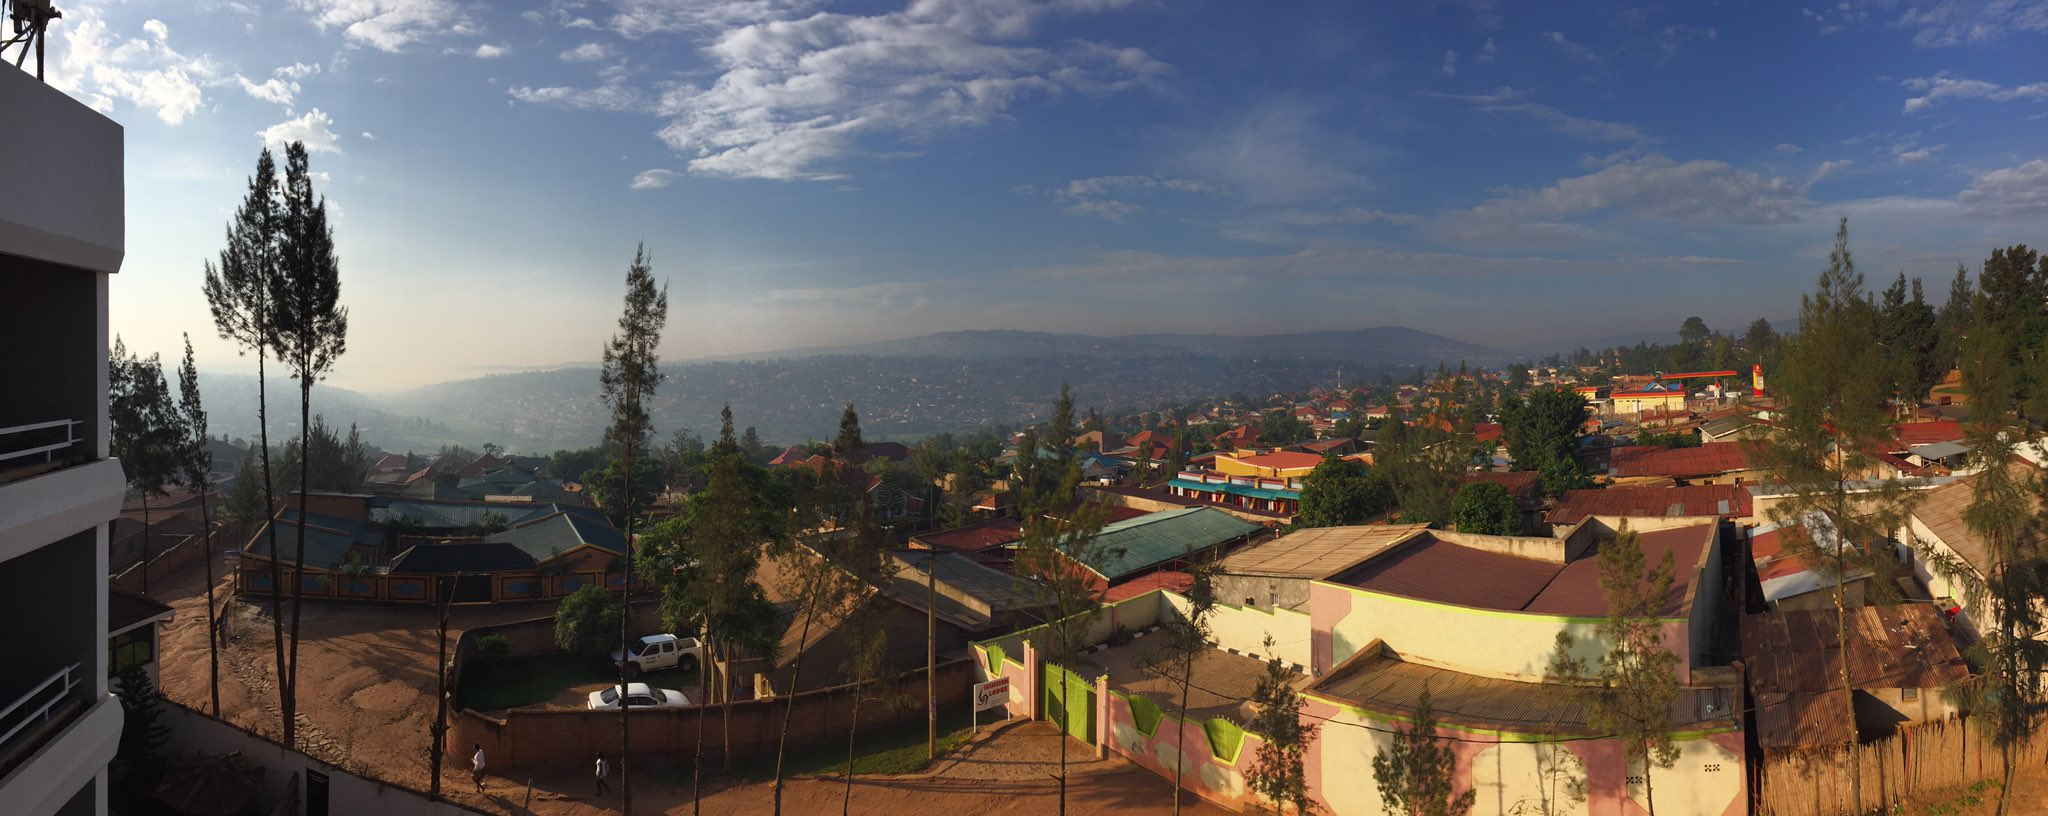 This was my view when I woke up this morning. I've said it before but Kigali is a gorgeous town. https://t.co/rRWsZozN36